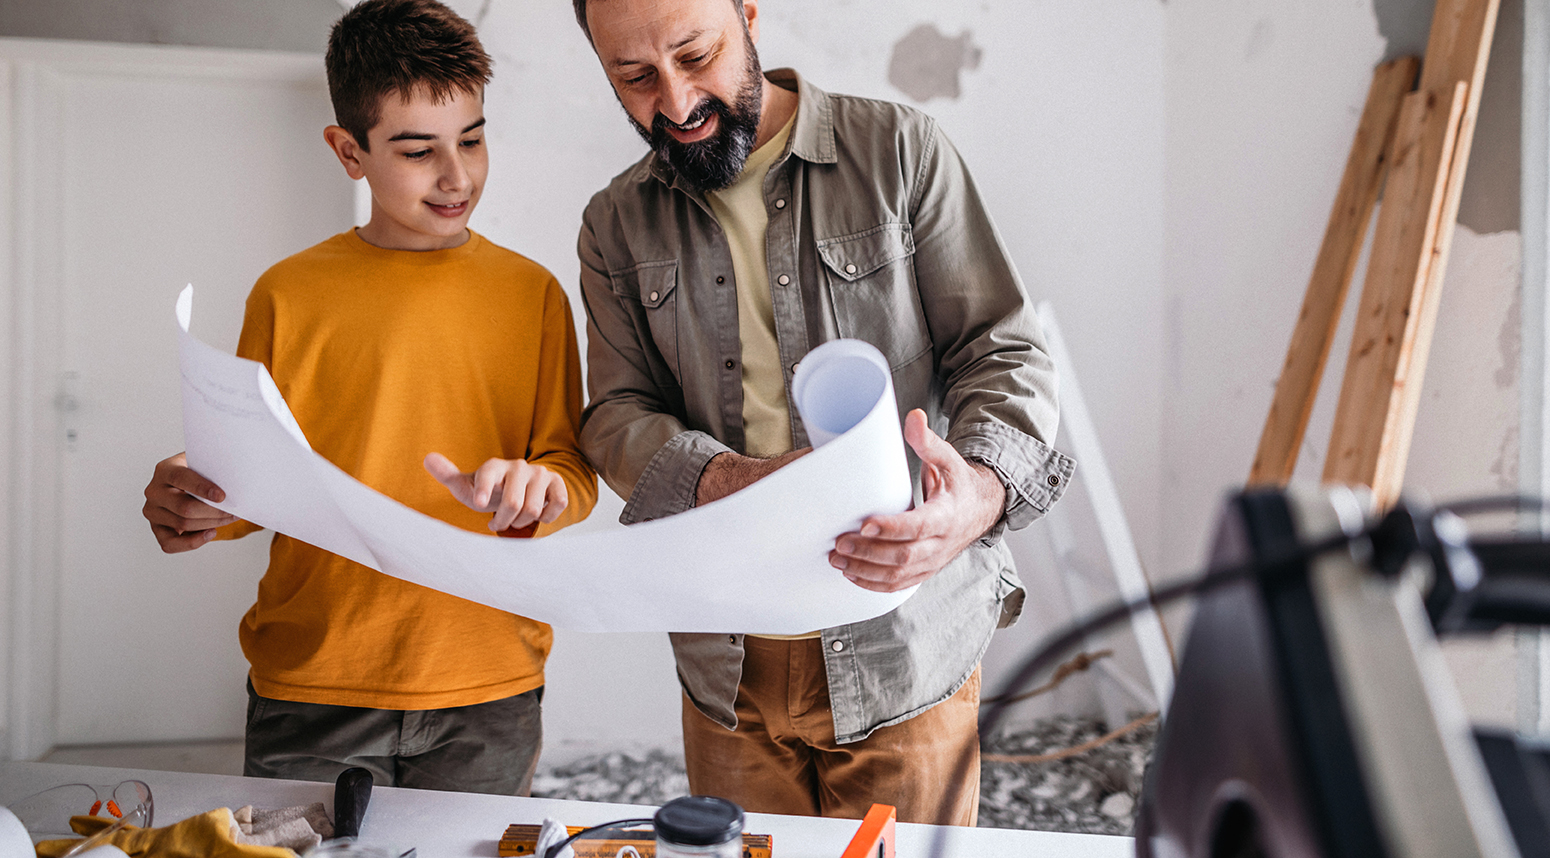 Father and son looking at blueprints in home